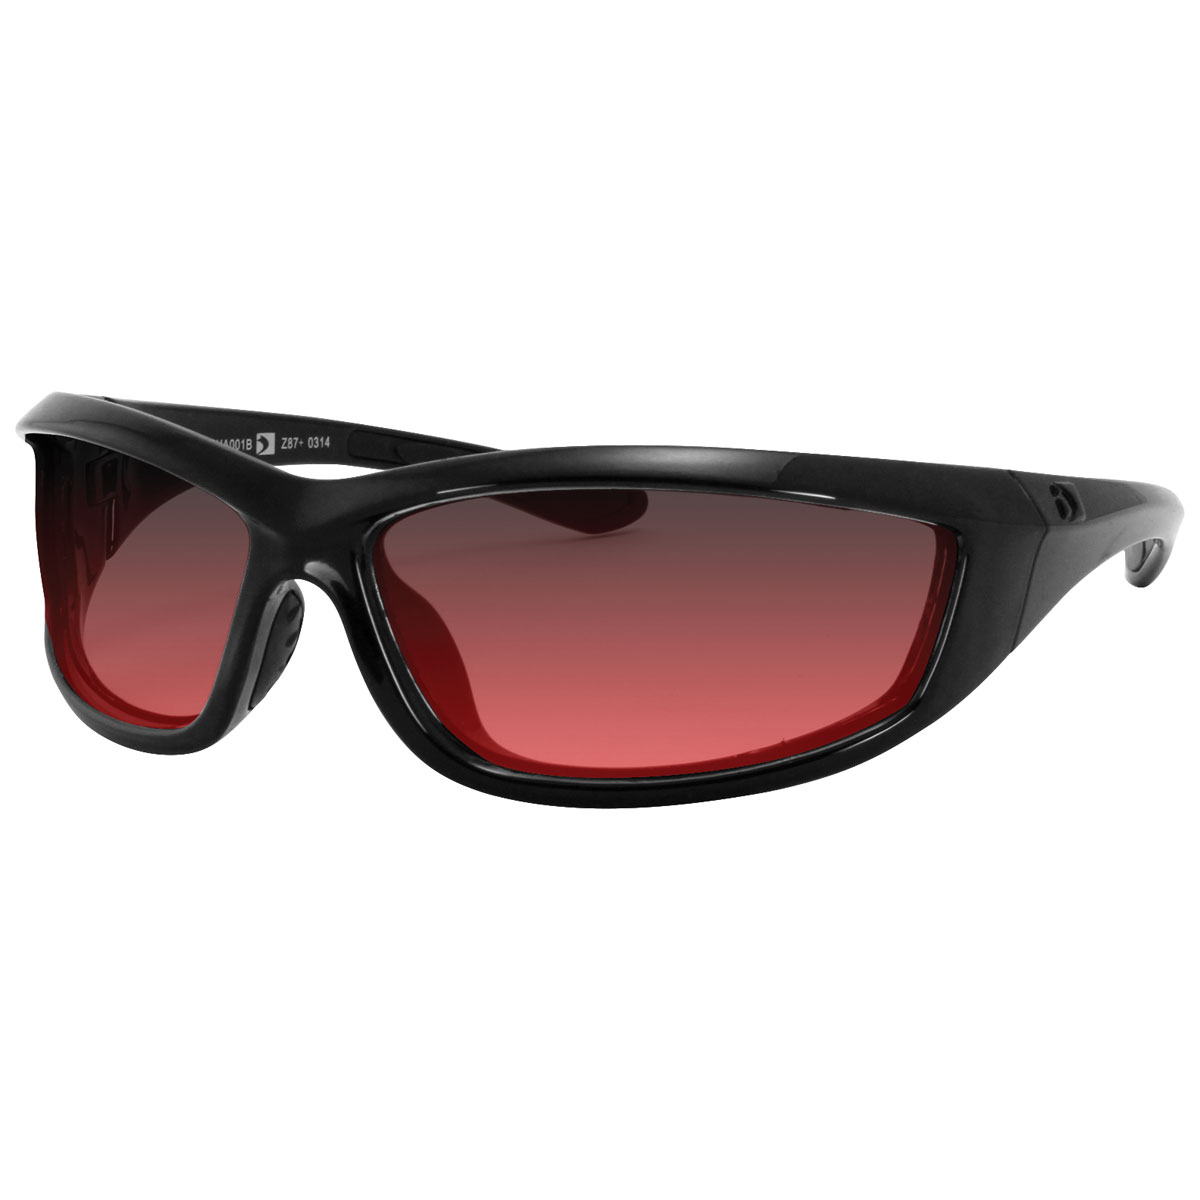 Bobster Charger Sunglasses with Rose Lens